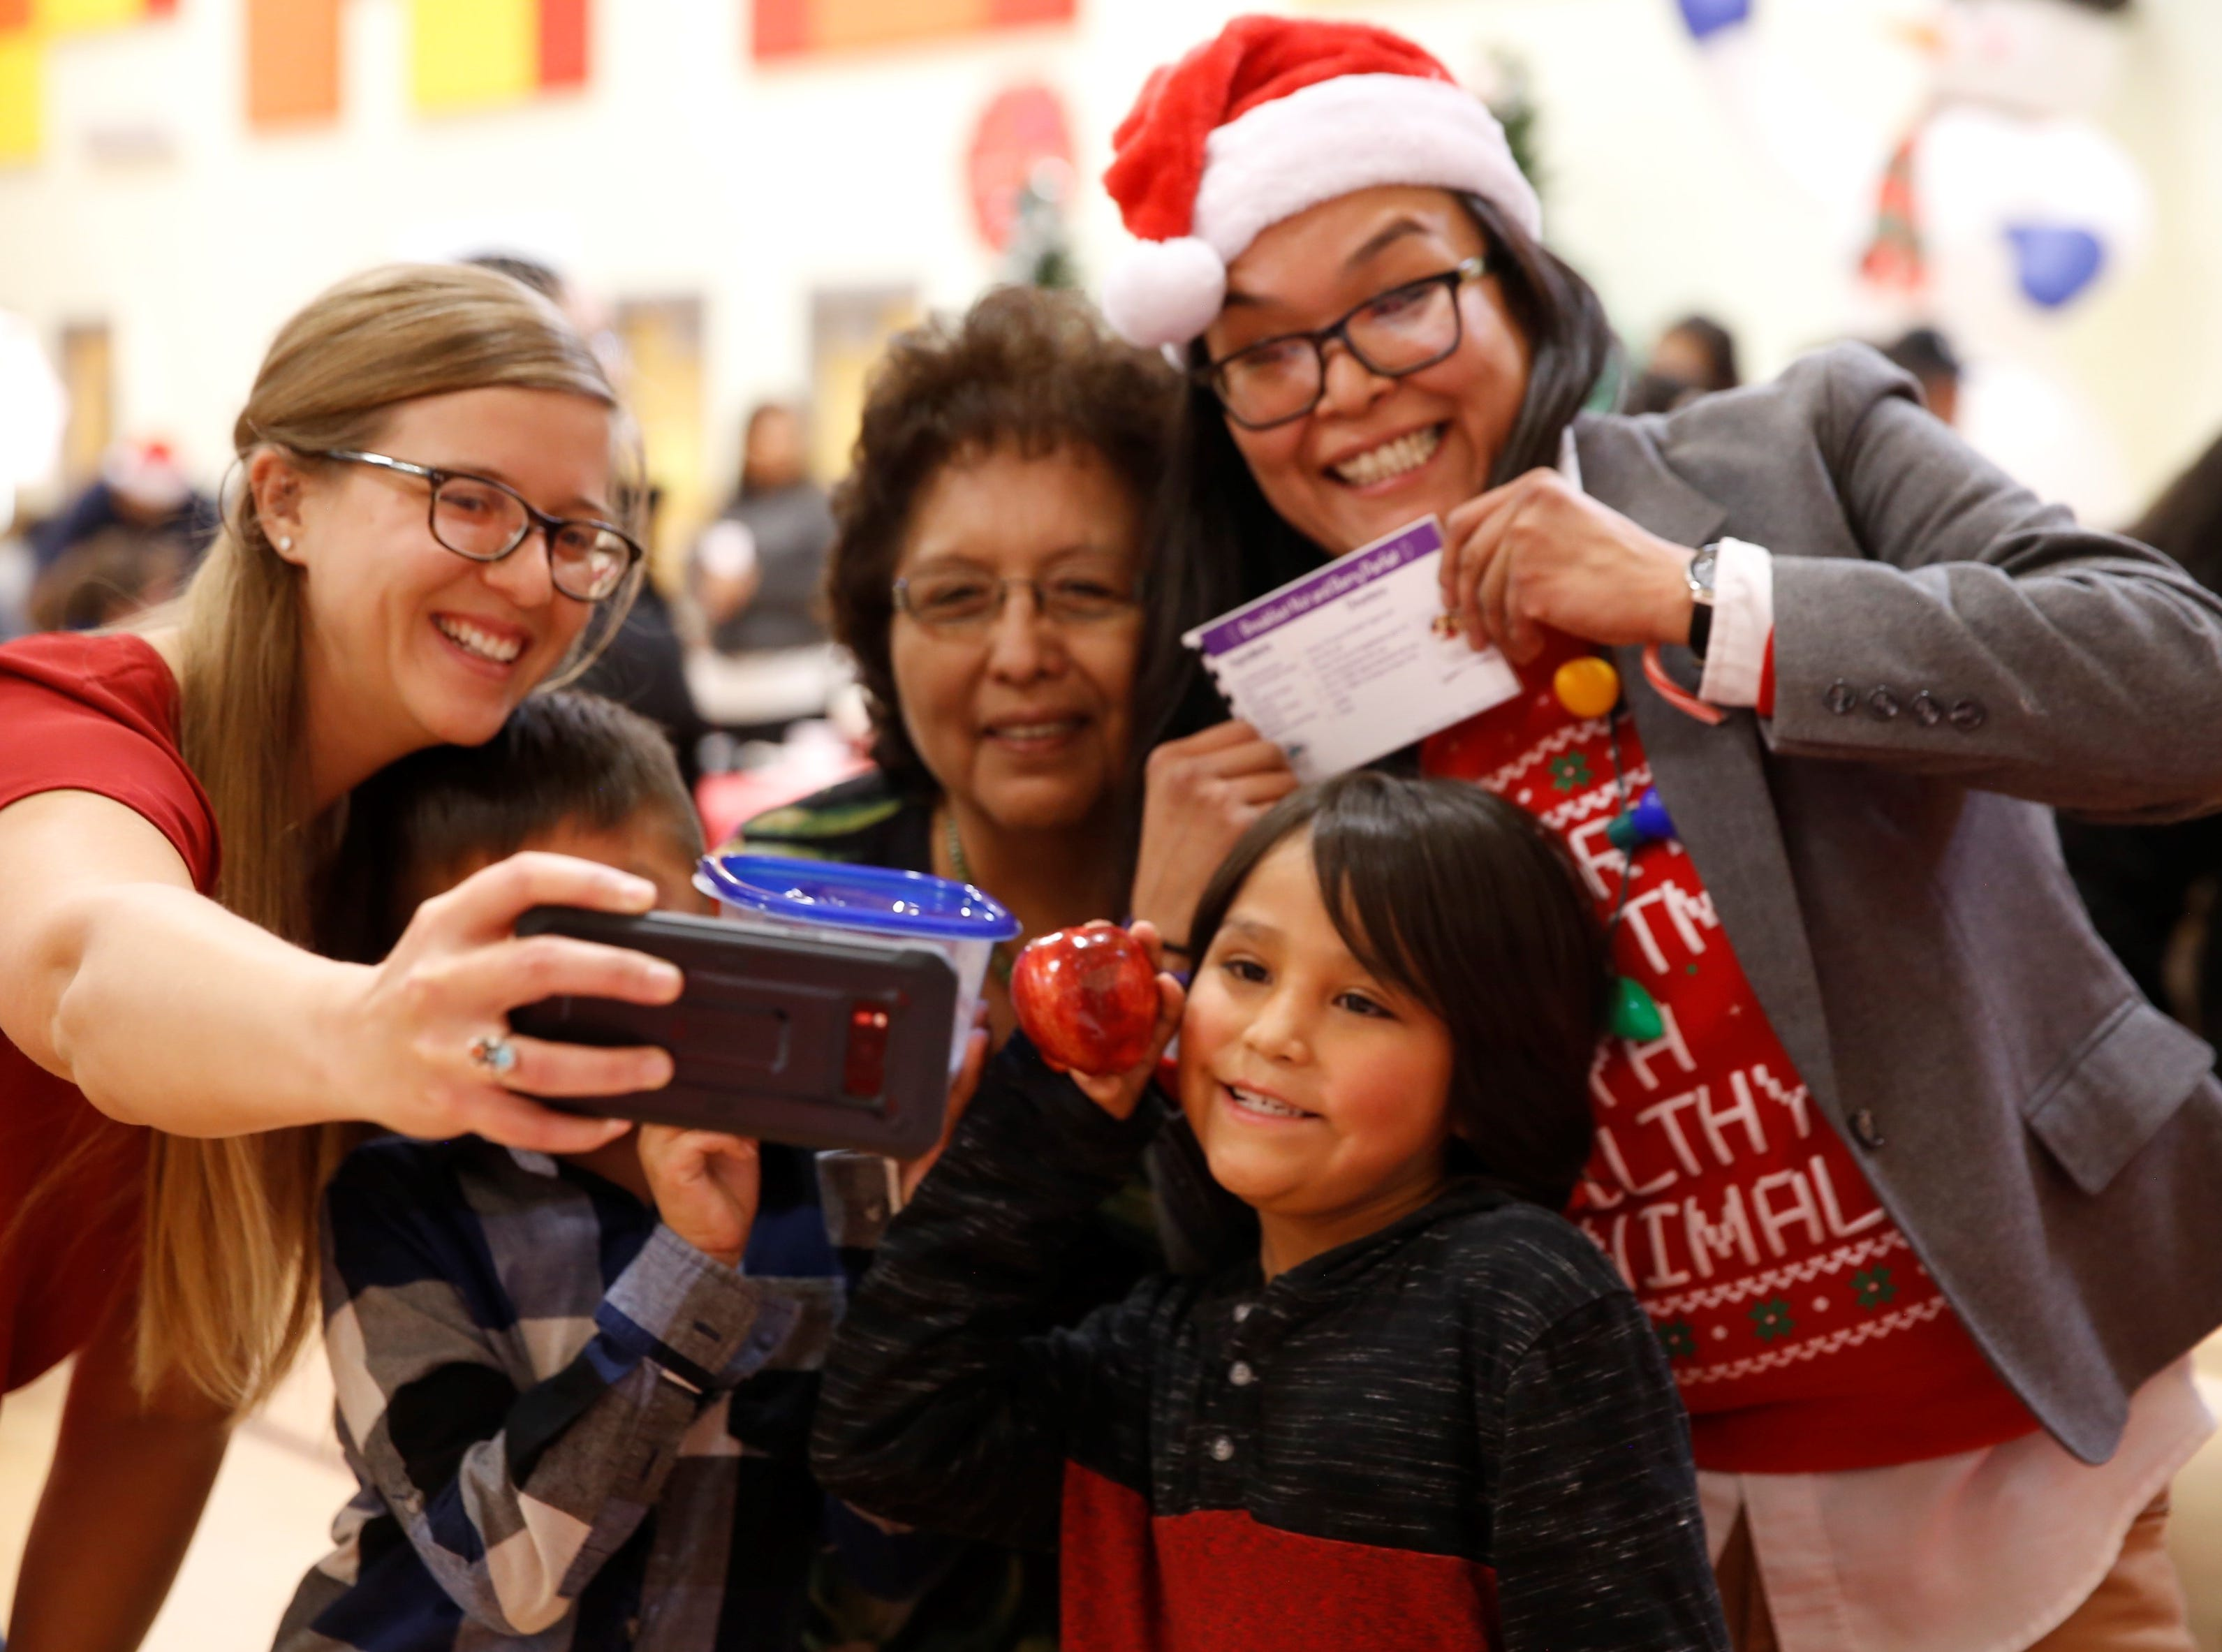 Katie Brown uses a smartphone to take a group selfie as part of an activity at the family winter conference on Wednesday at the Shiprock Youth Complex in Shiprock.